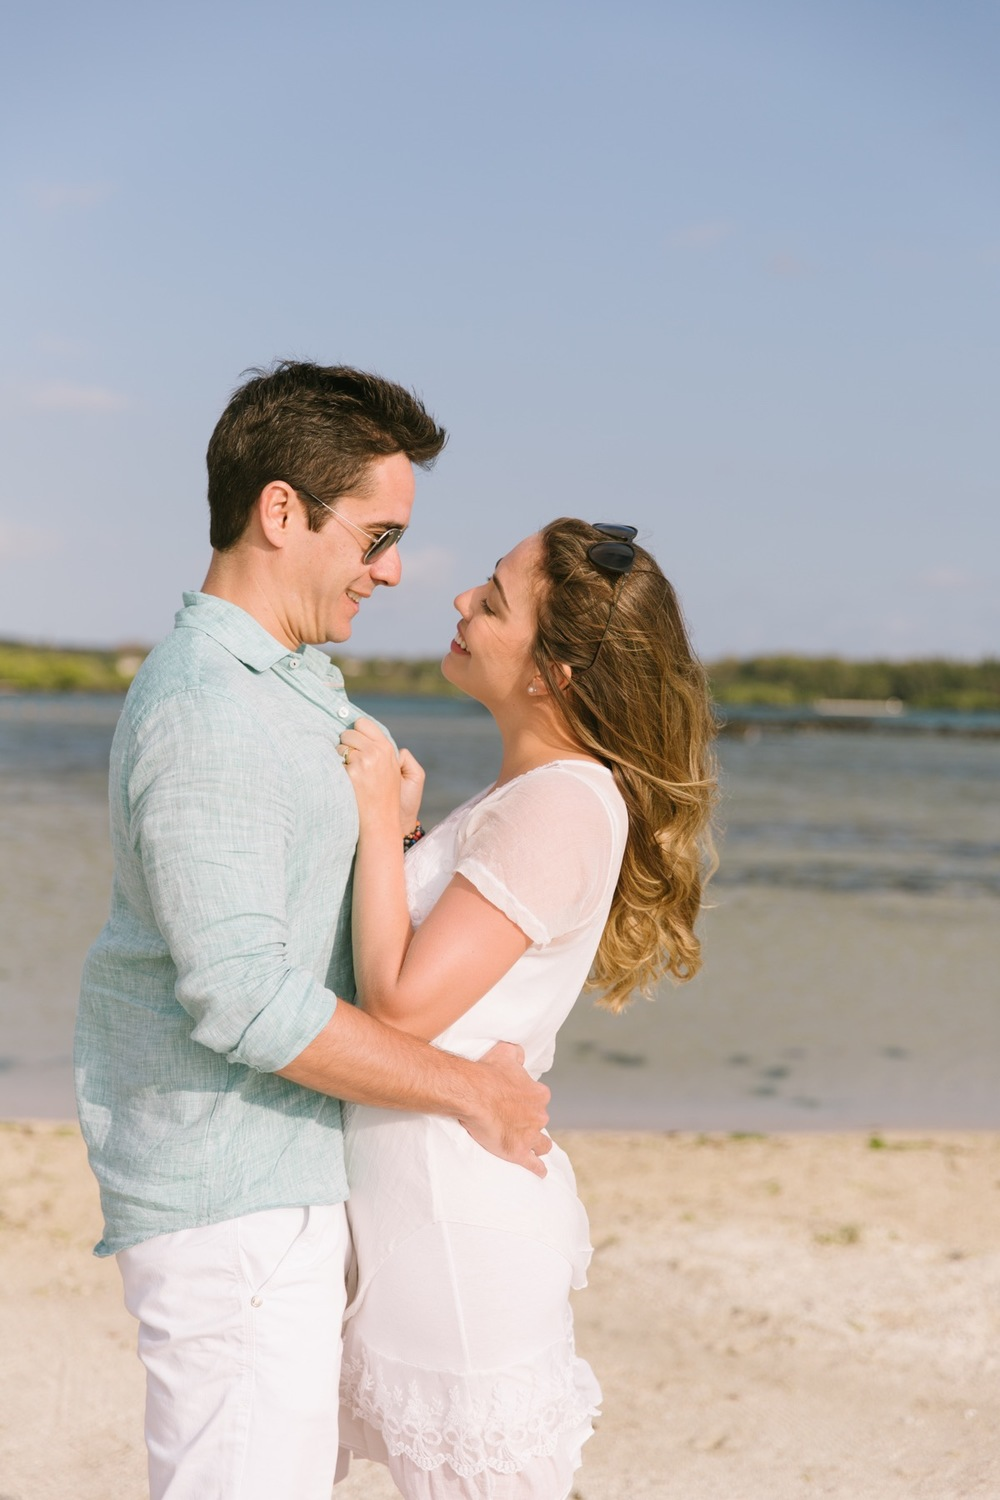 A Romantic Beach Honeymoon in Mauritius | Mauritius Vacation Photographer